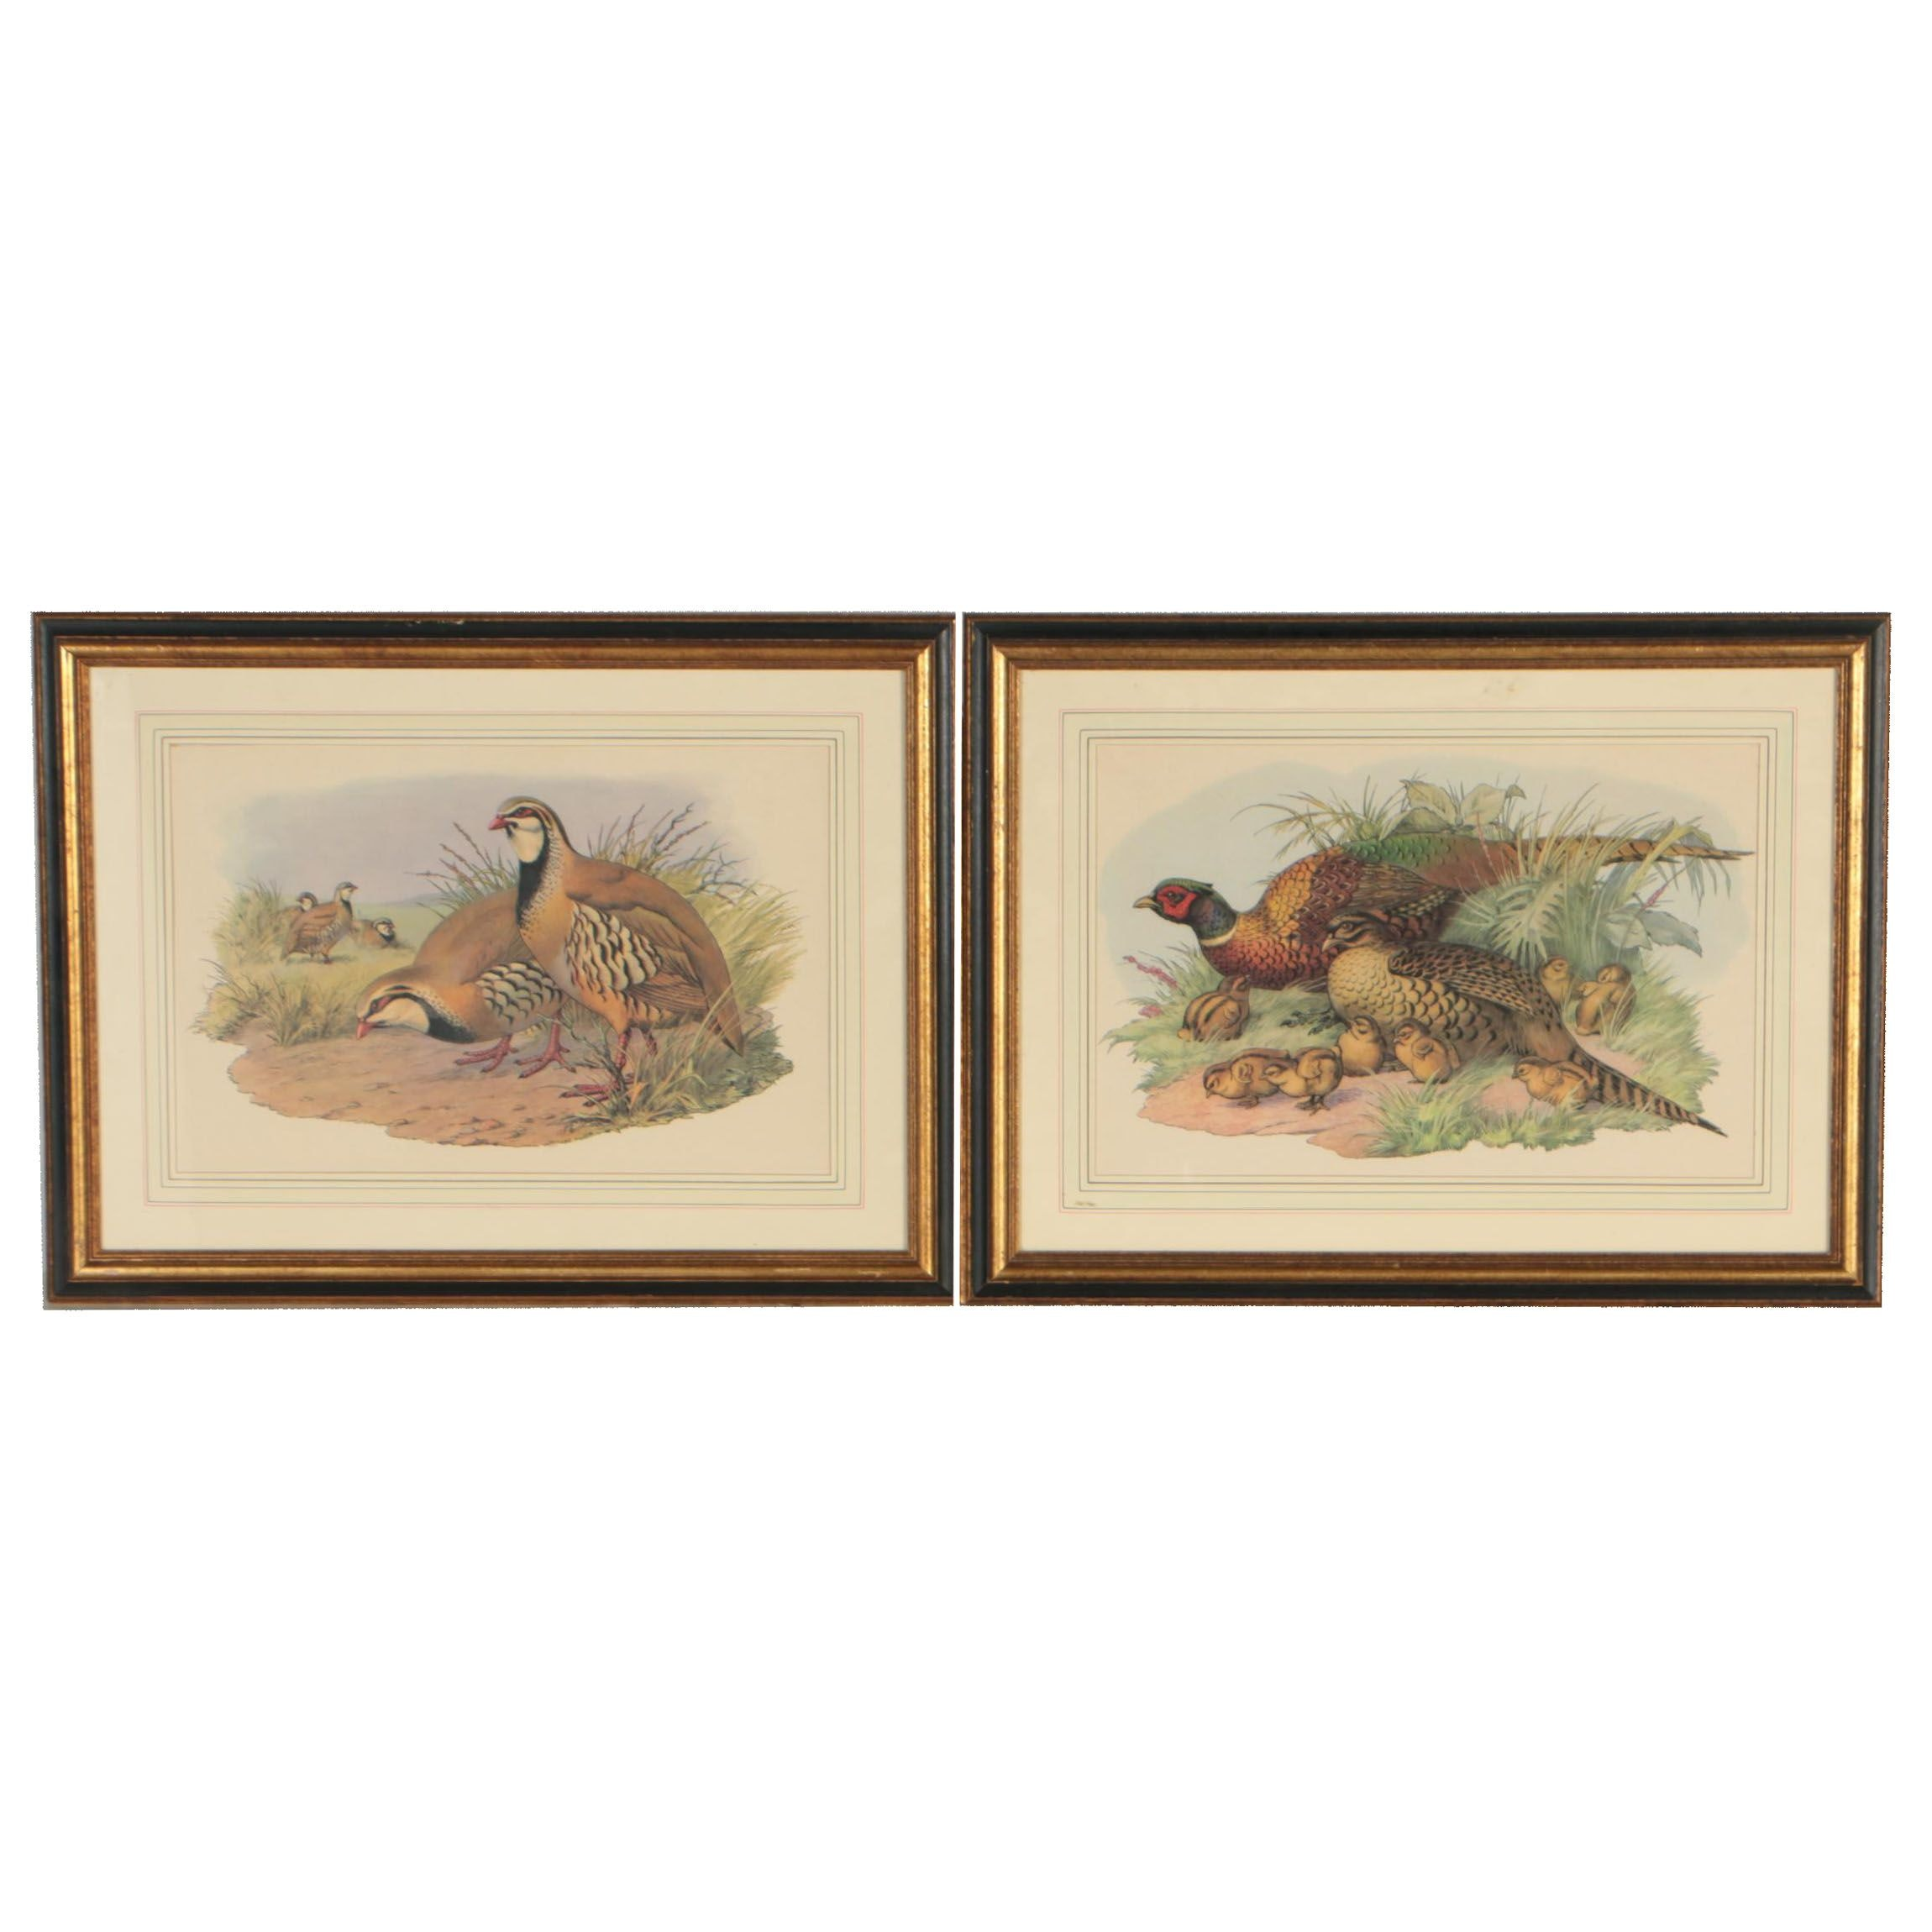 Late 20th Century Wildlife Offset Lithographs of Avian Illustrations